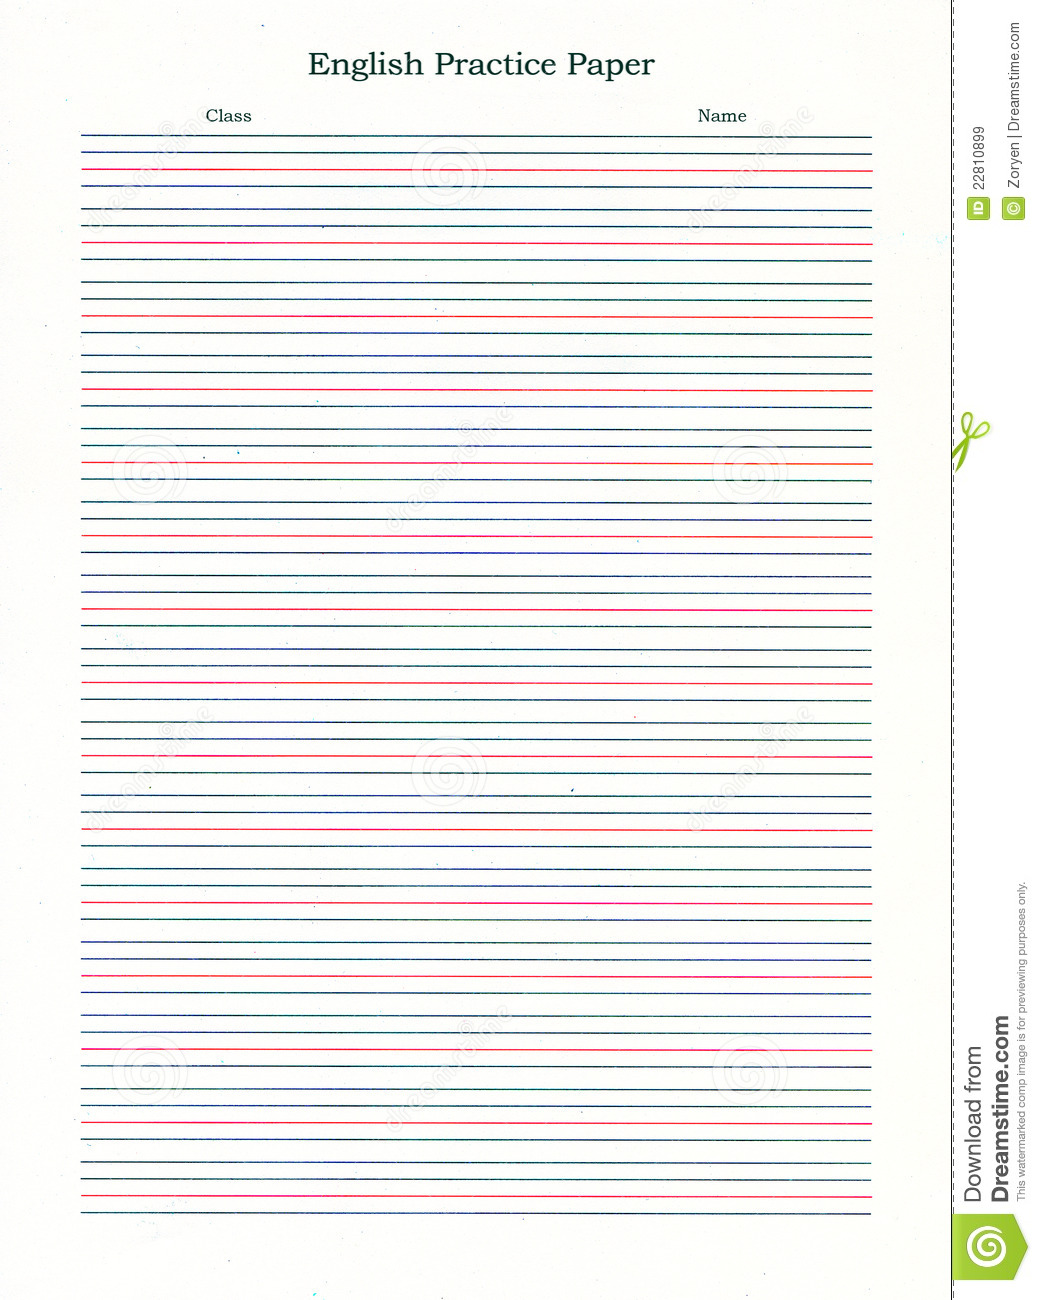 Sheet of English writing practice paper with blue and red lines.